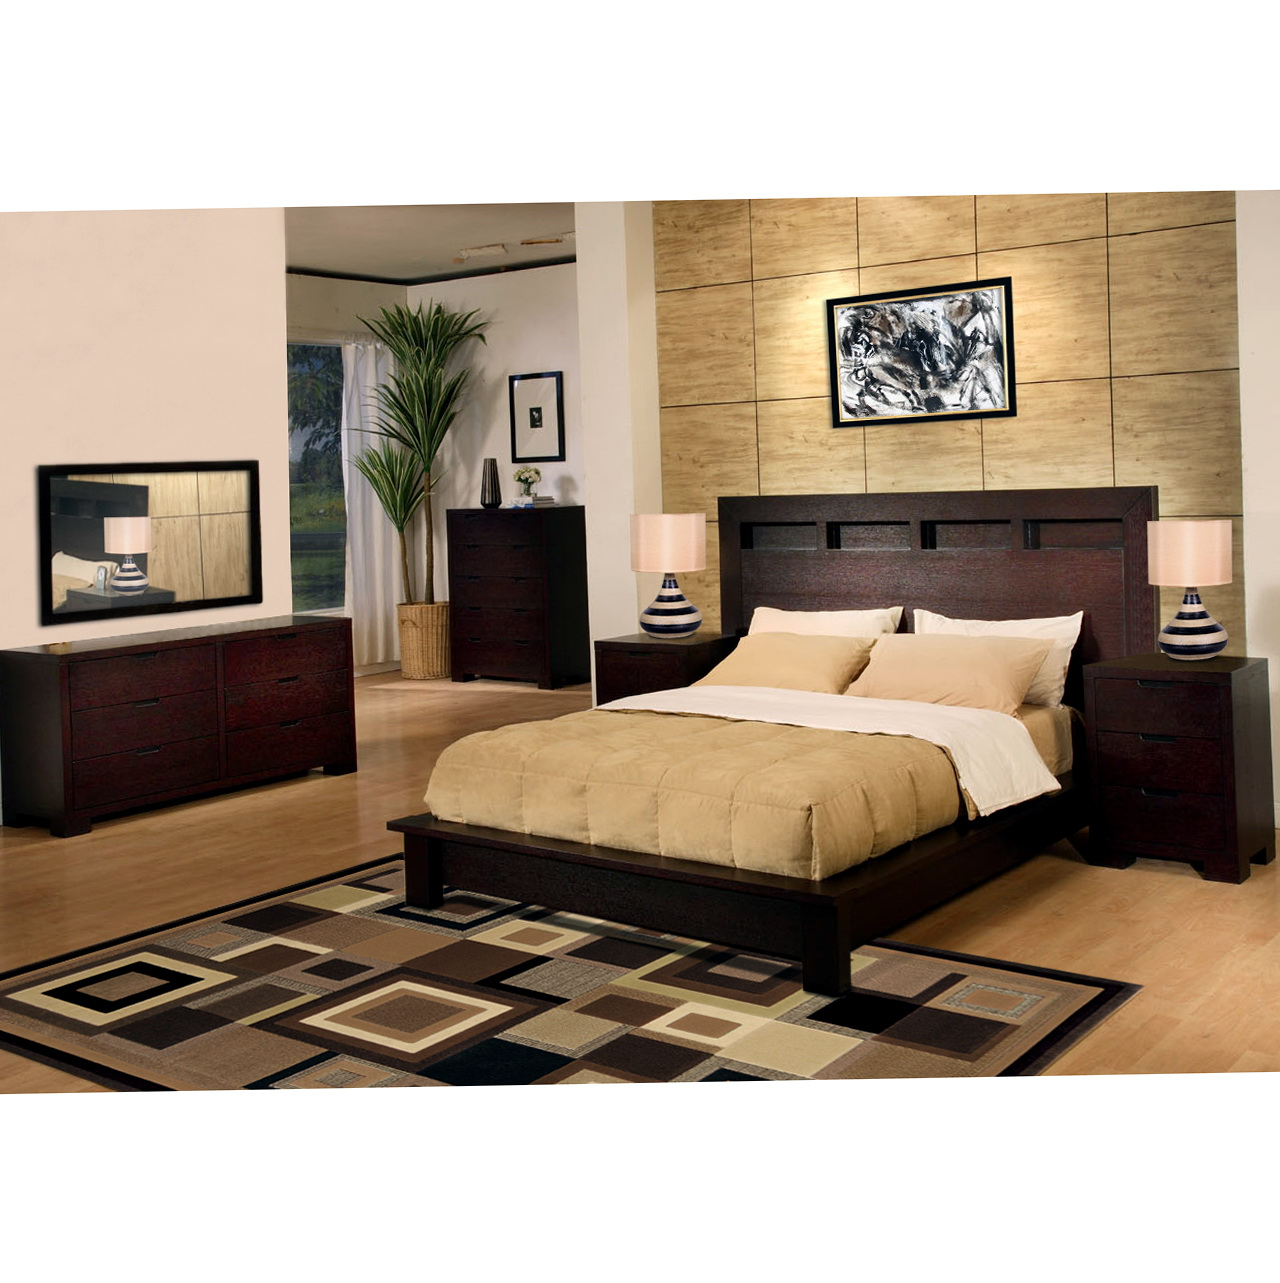 Queen Size Bedroom Sets 2